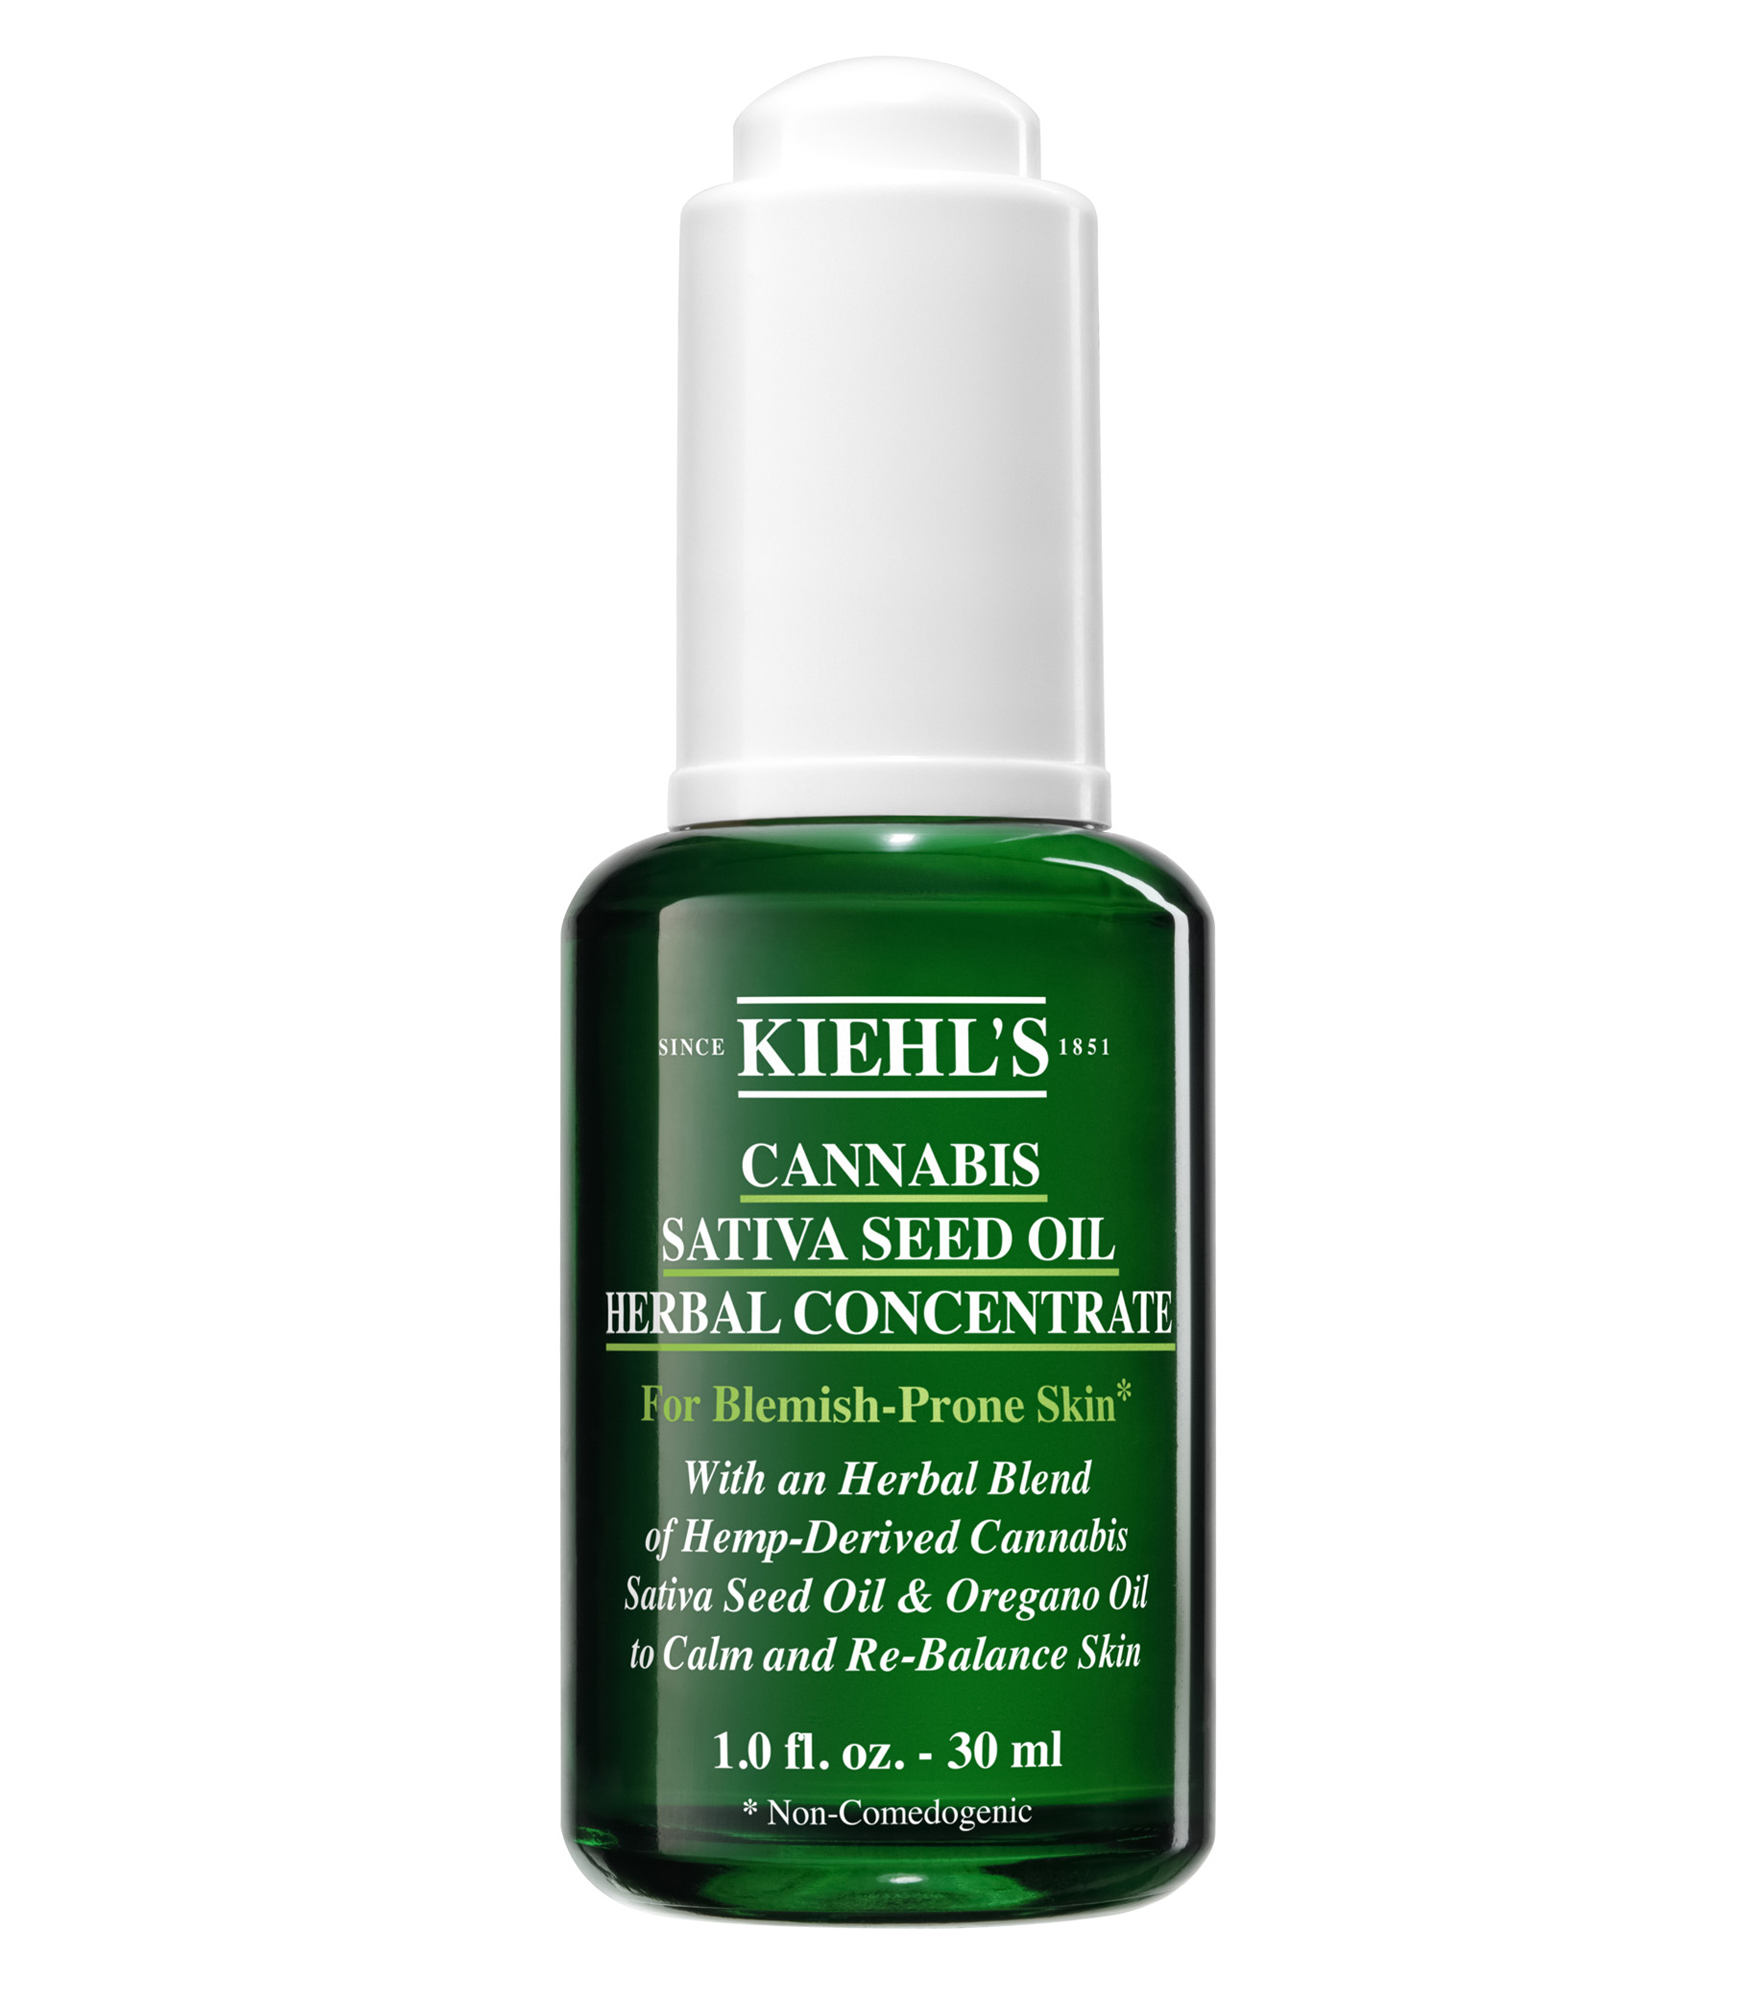 $49 Kiehl's Cannabis Sativa Seed Oil Herbal Concentrate